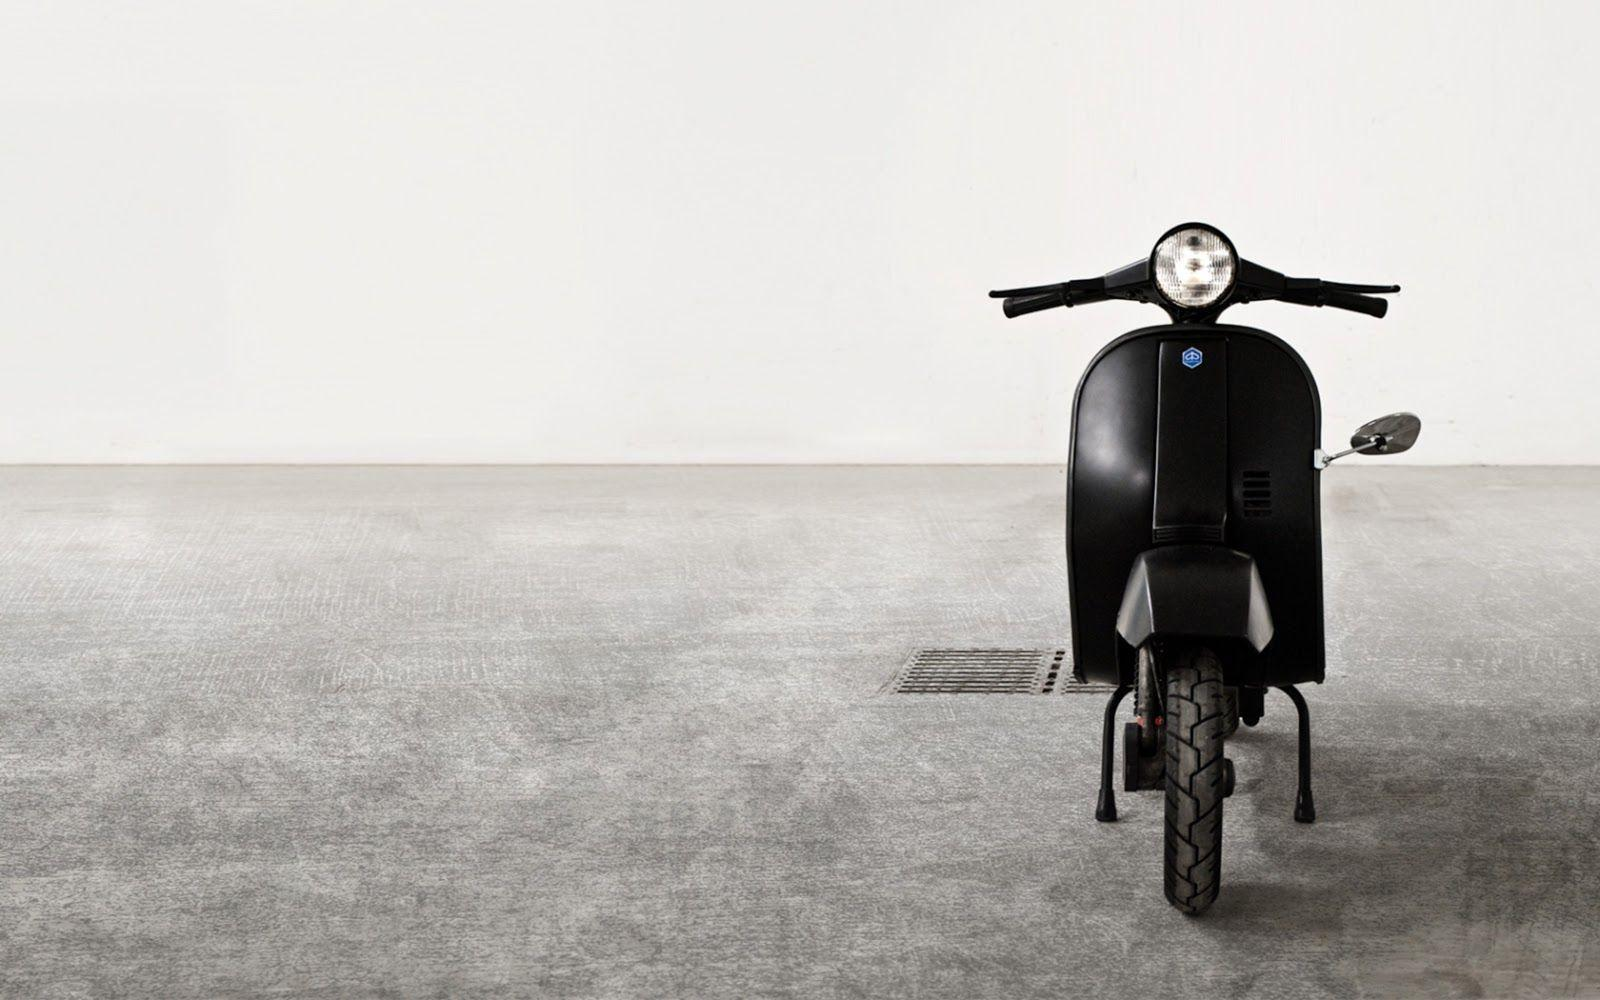 Patrick Staudt : Product'n'Graphic-Design: Vespa PK Wallpaper